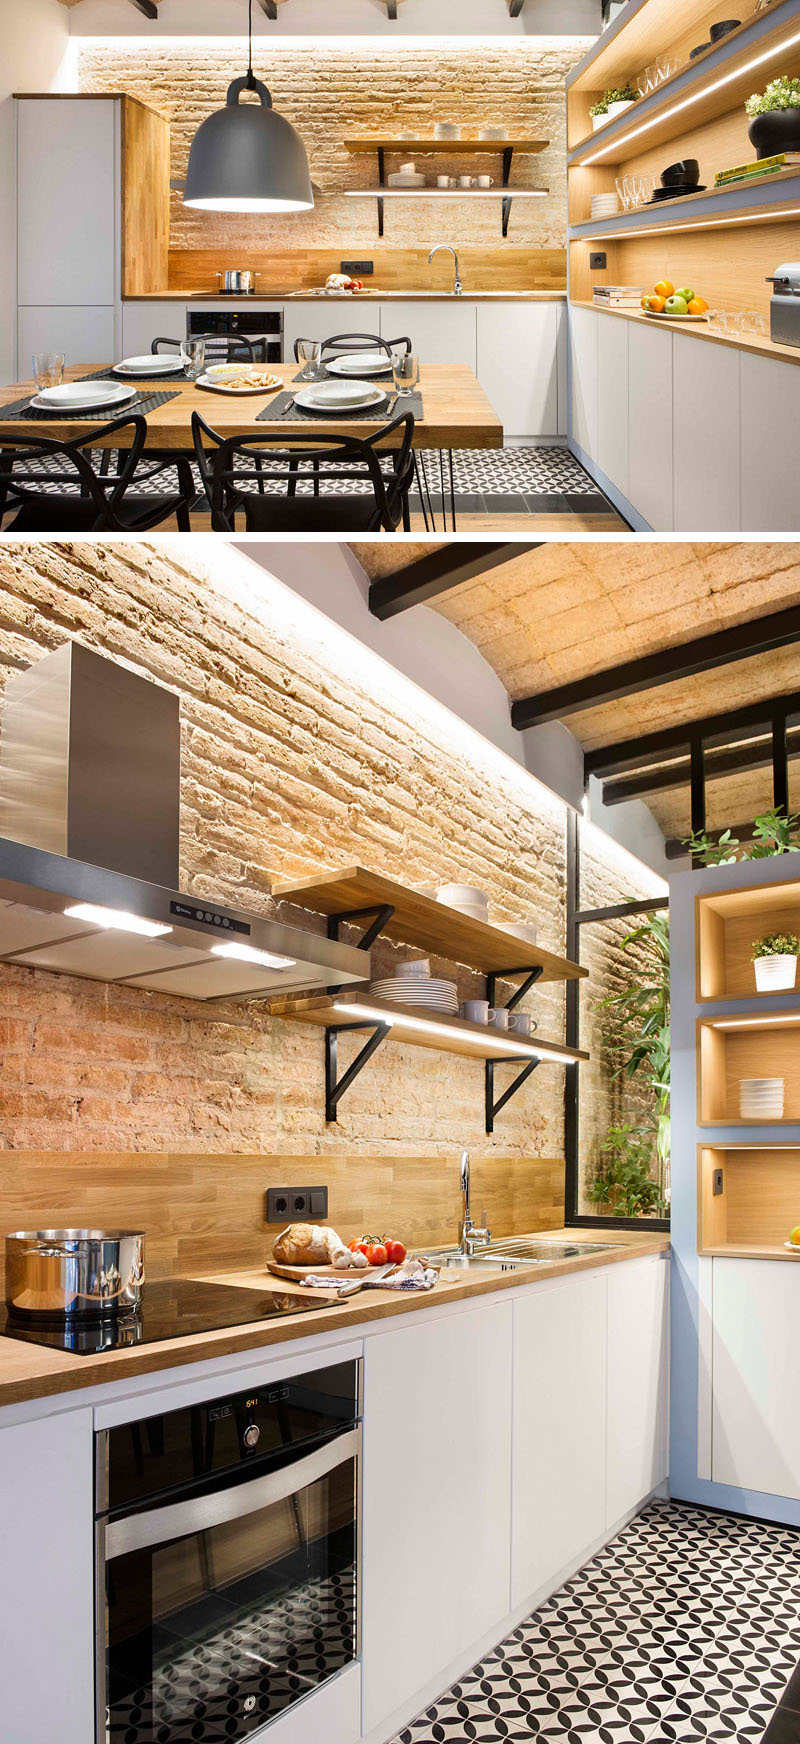 small-modern-apartment-kitchen-brick-wall-210317-338-04